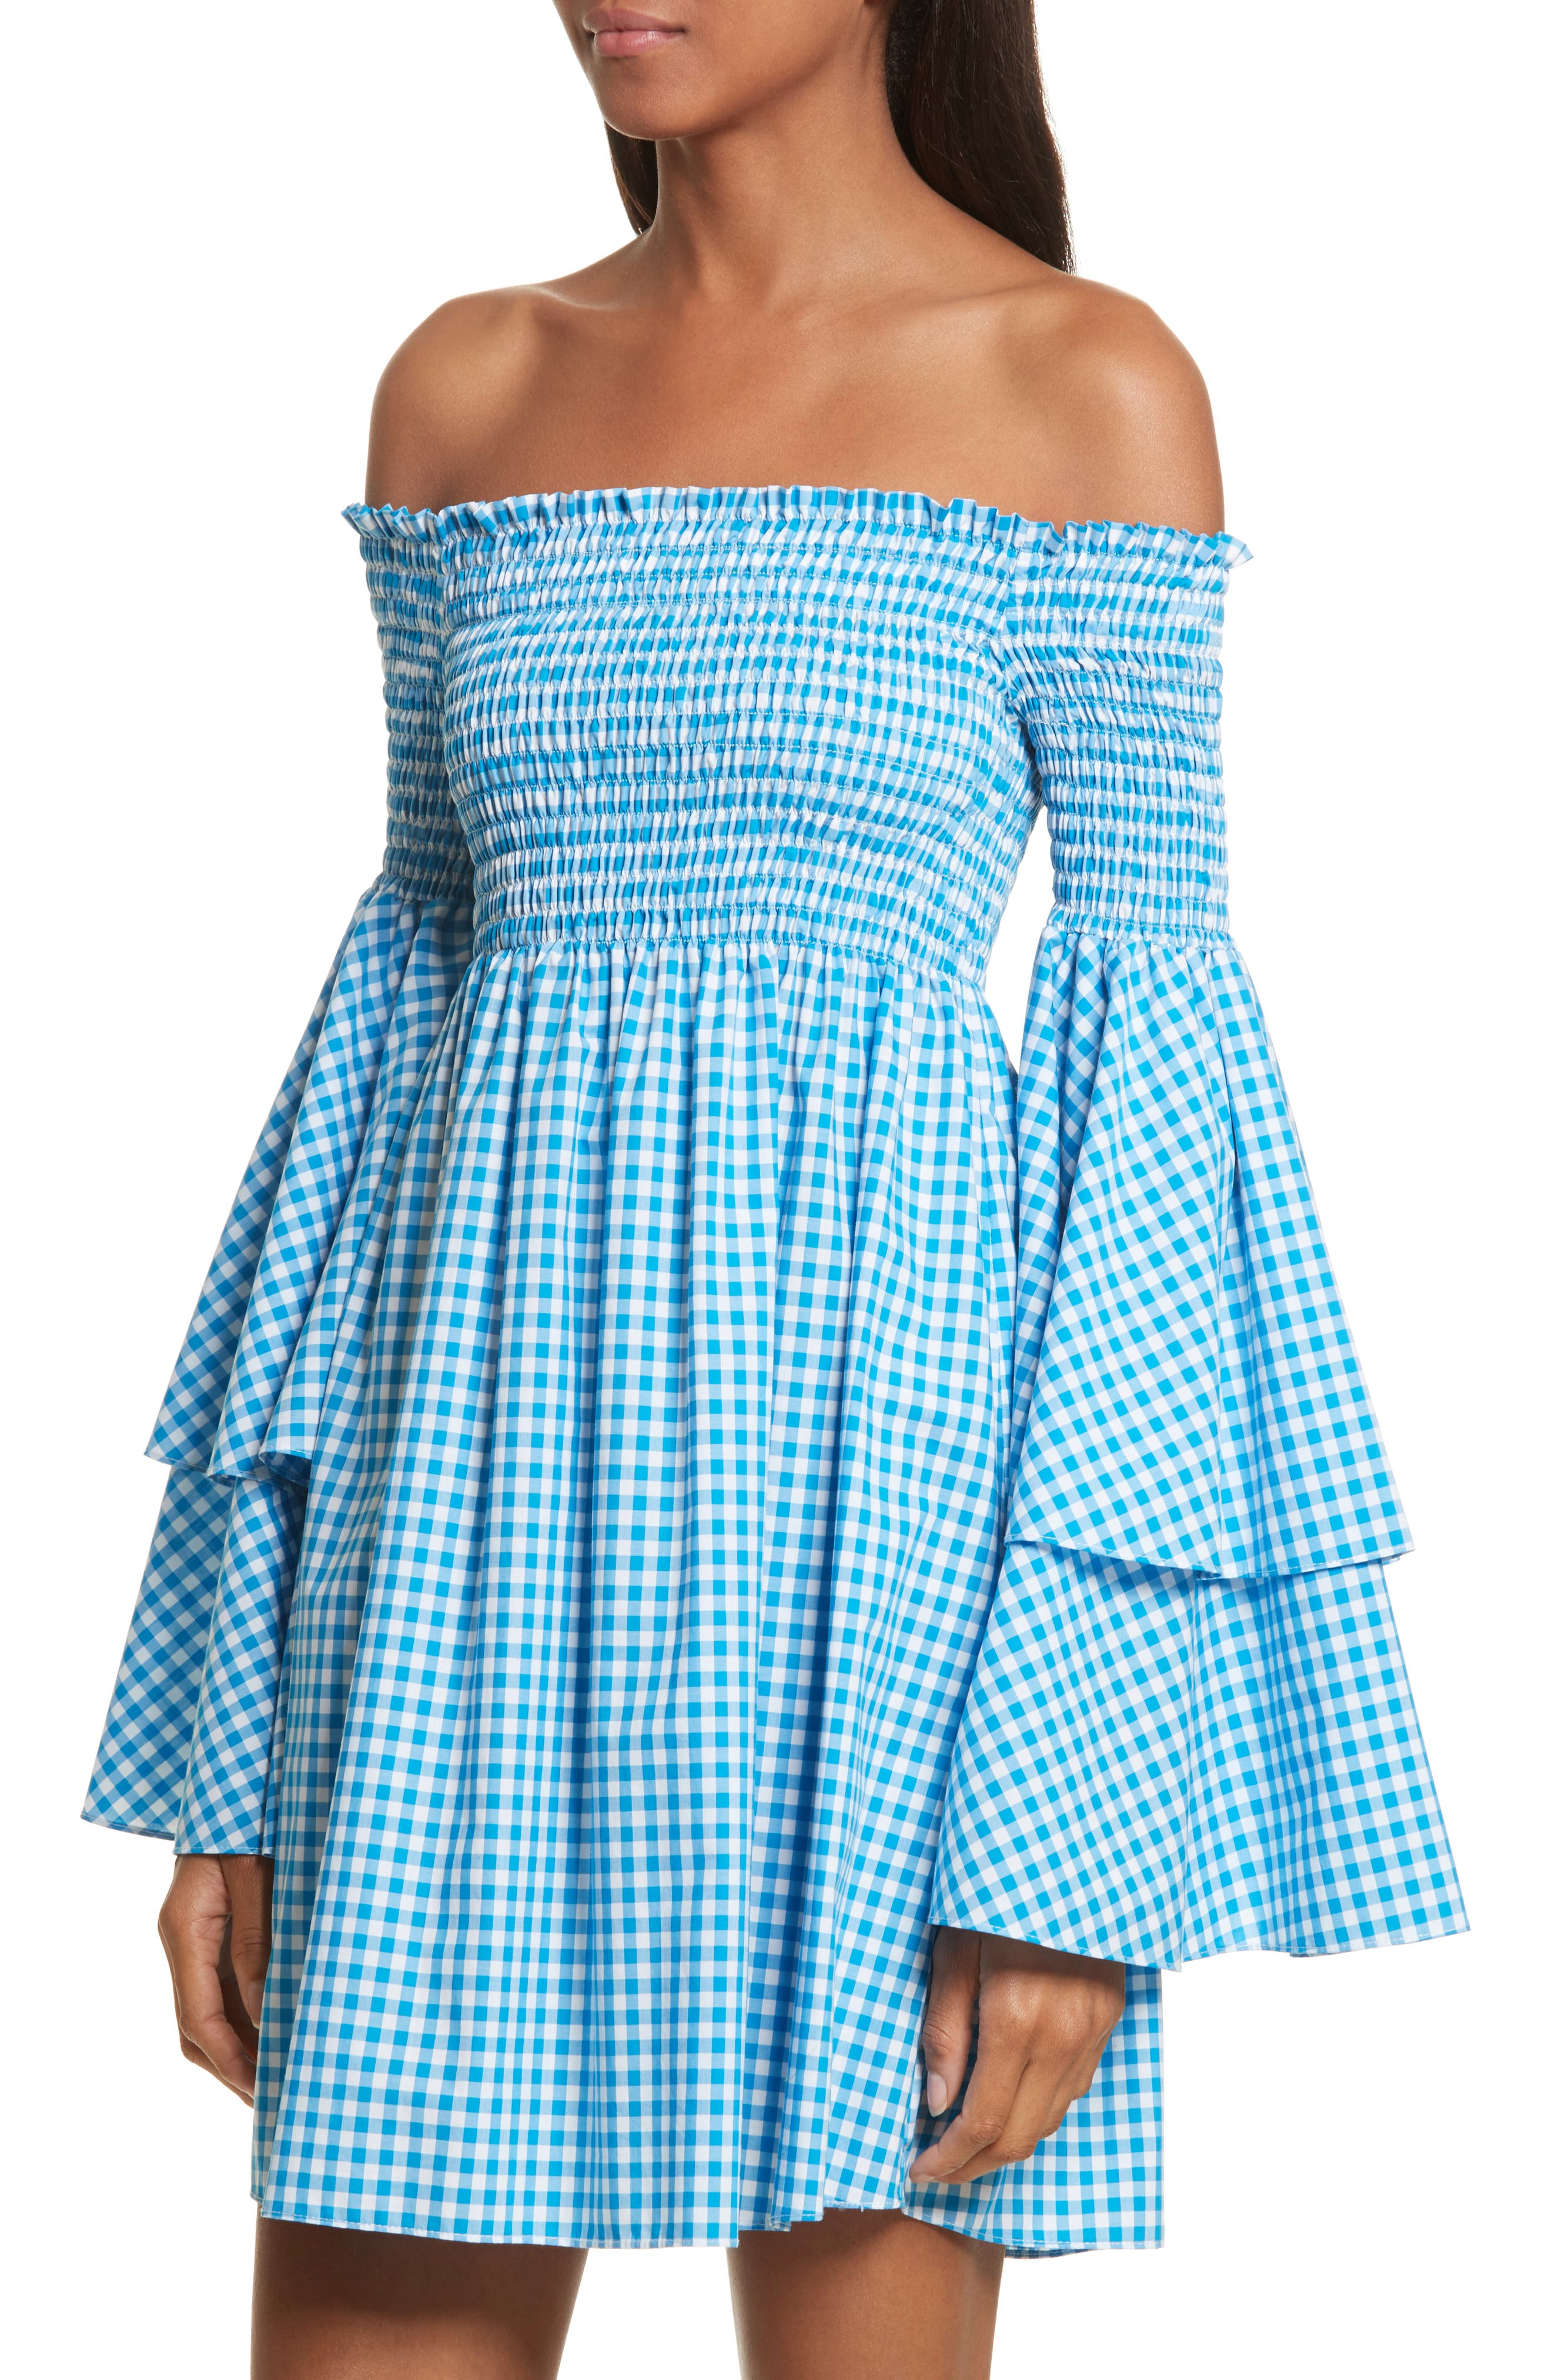 Appolonia Gingham Off the Shoulder Dress,                             Alternate thumbnail 4, color,                             451